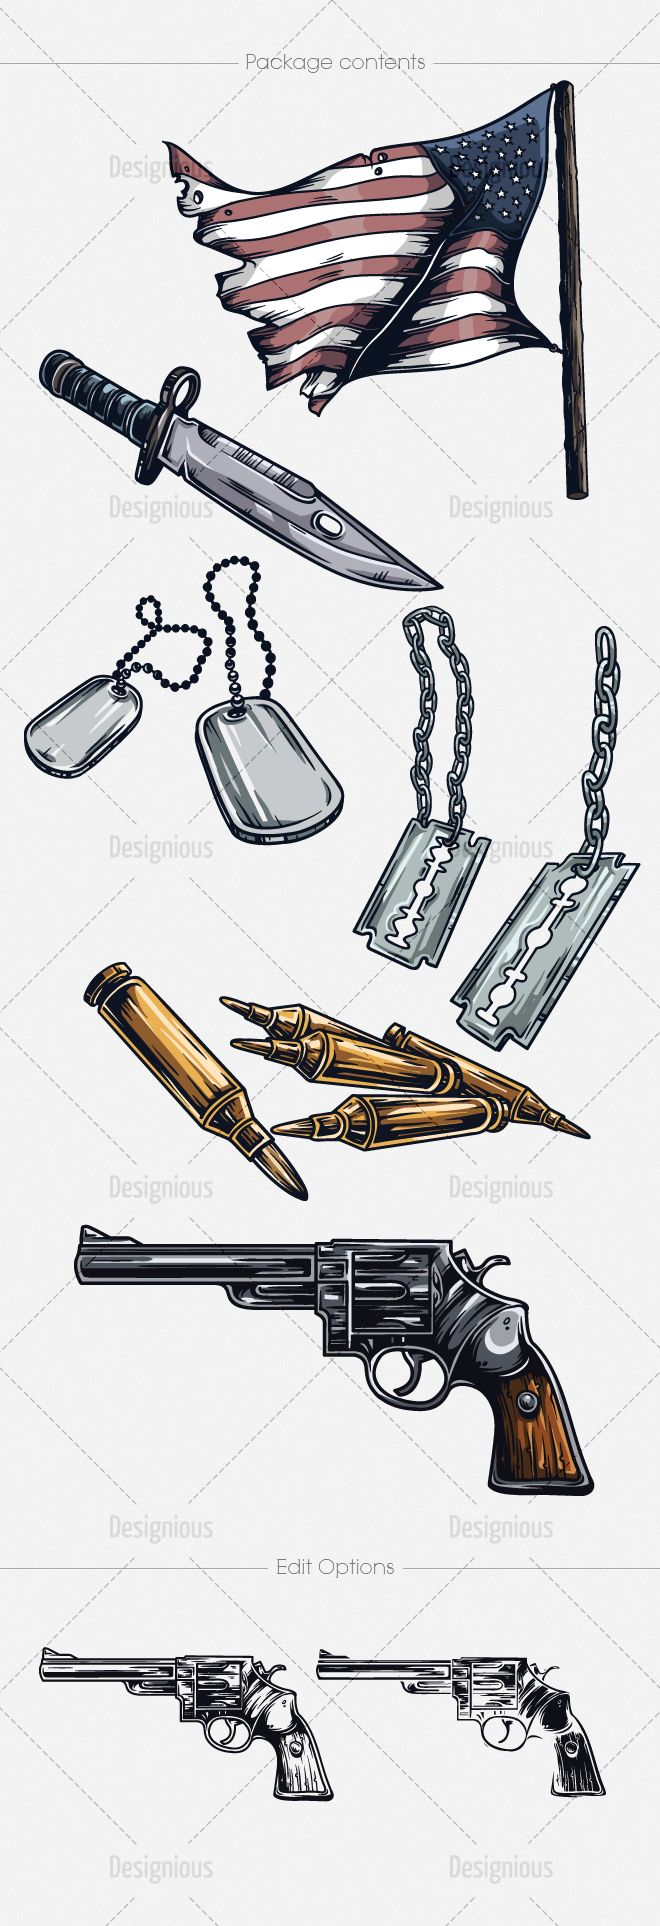 Army Vector Pack 1 | Designious